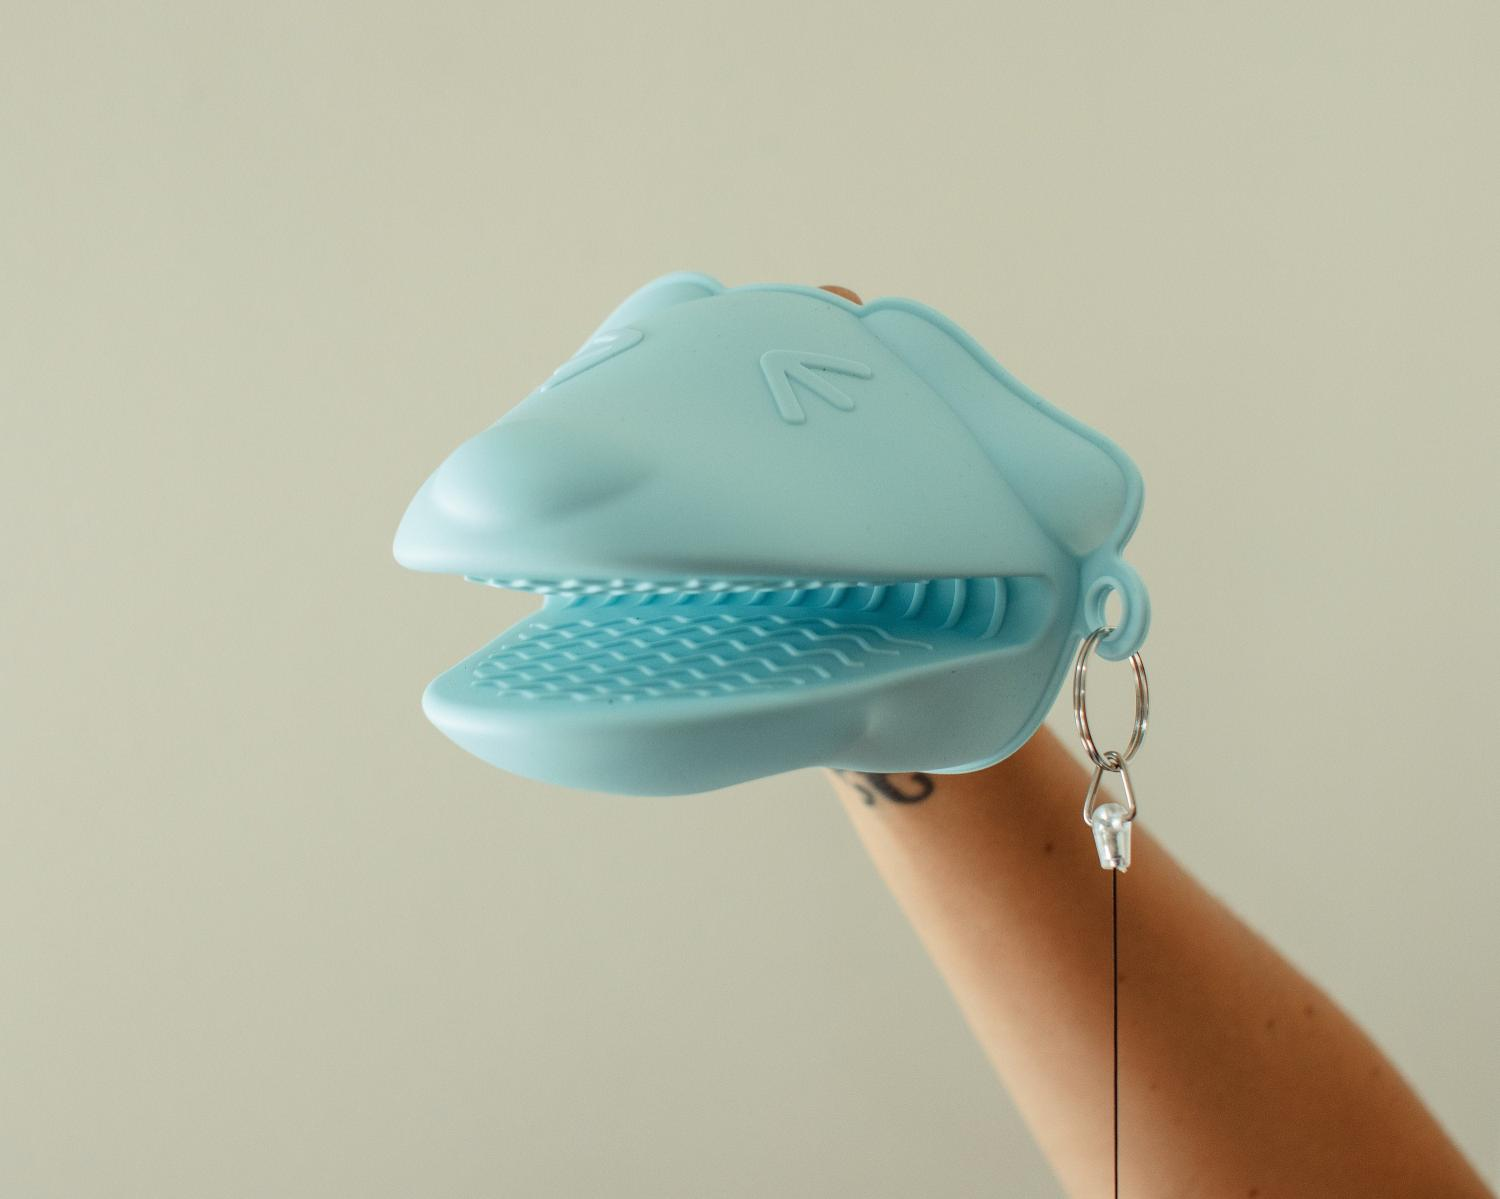 Portable Retractable Safety Mitt - Coronavirus Quarantine Glove